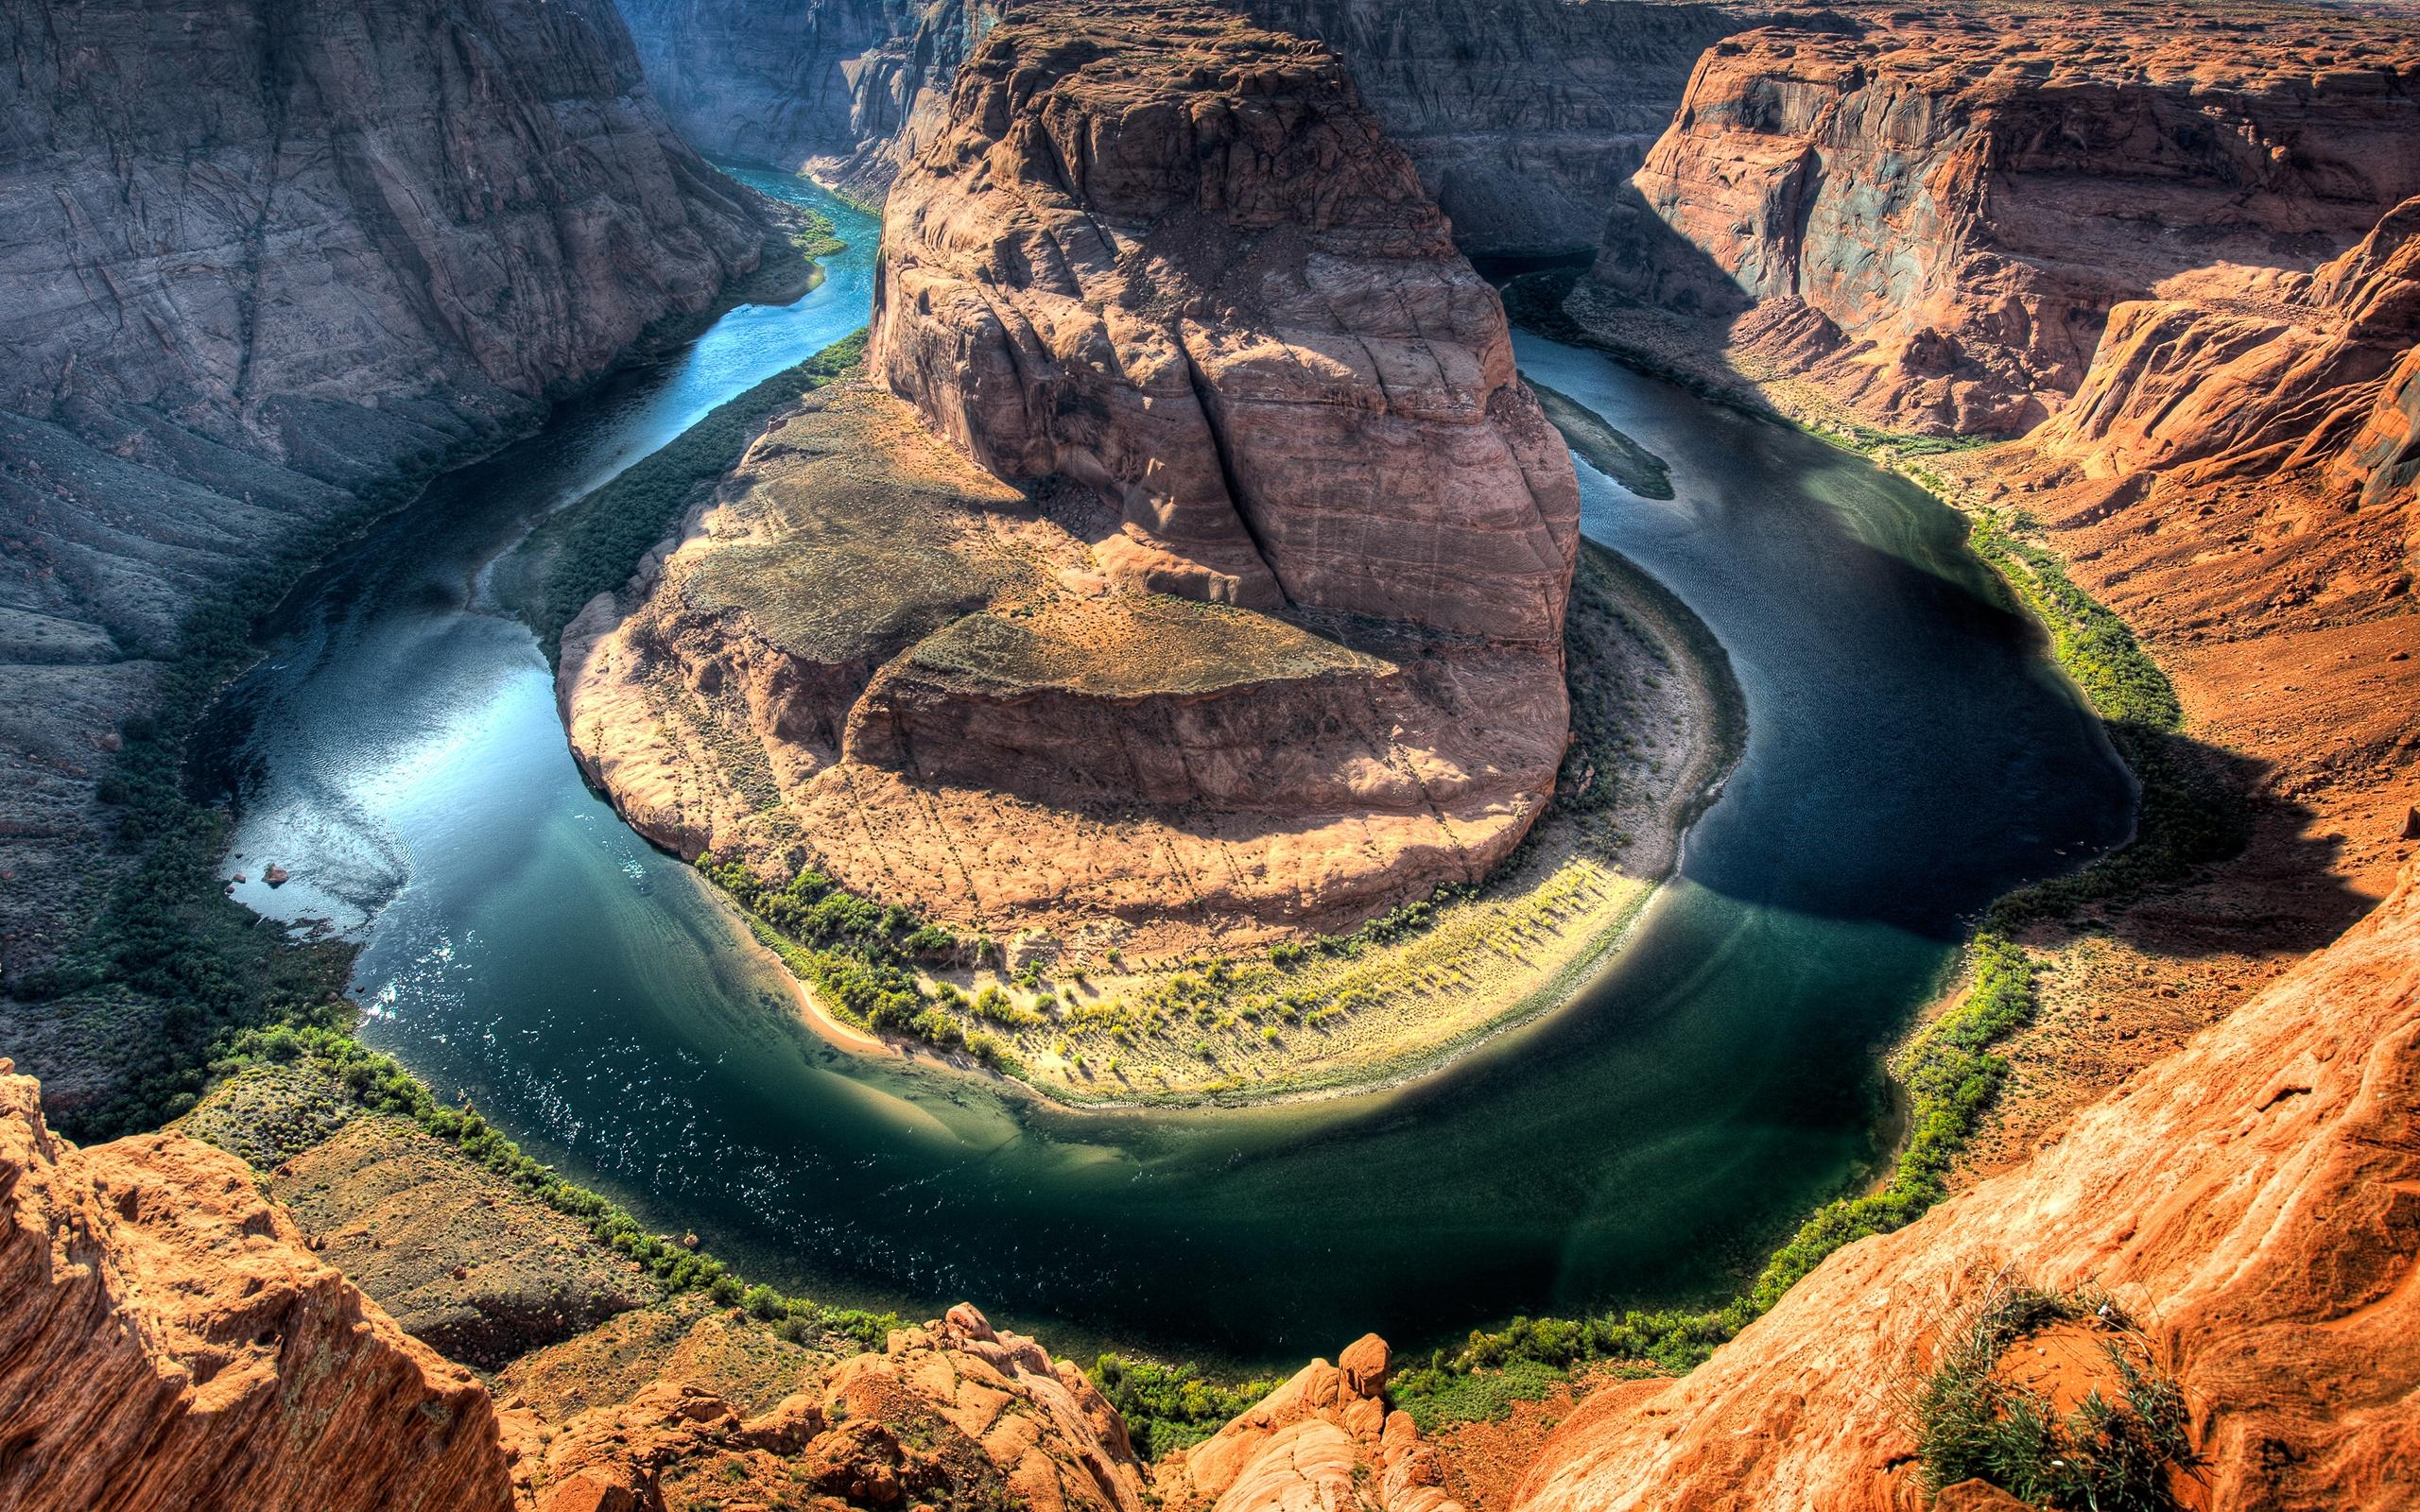 Horseshoe Bend Arizona Wallpapers in jpg format for free download